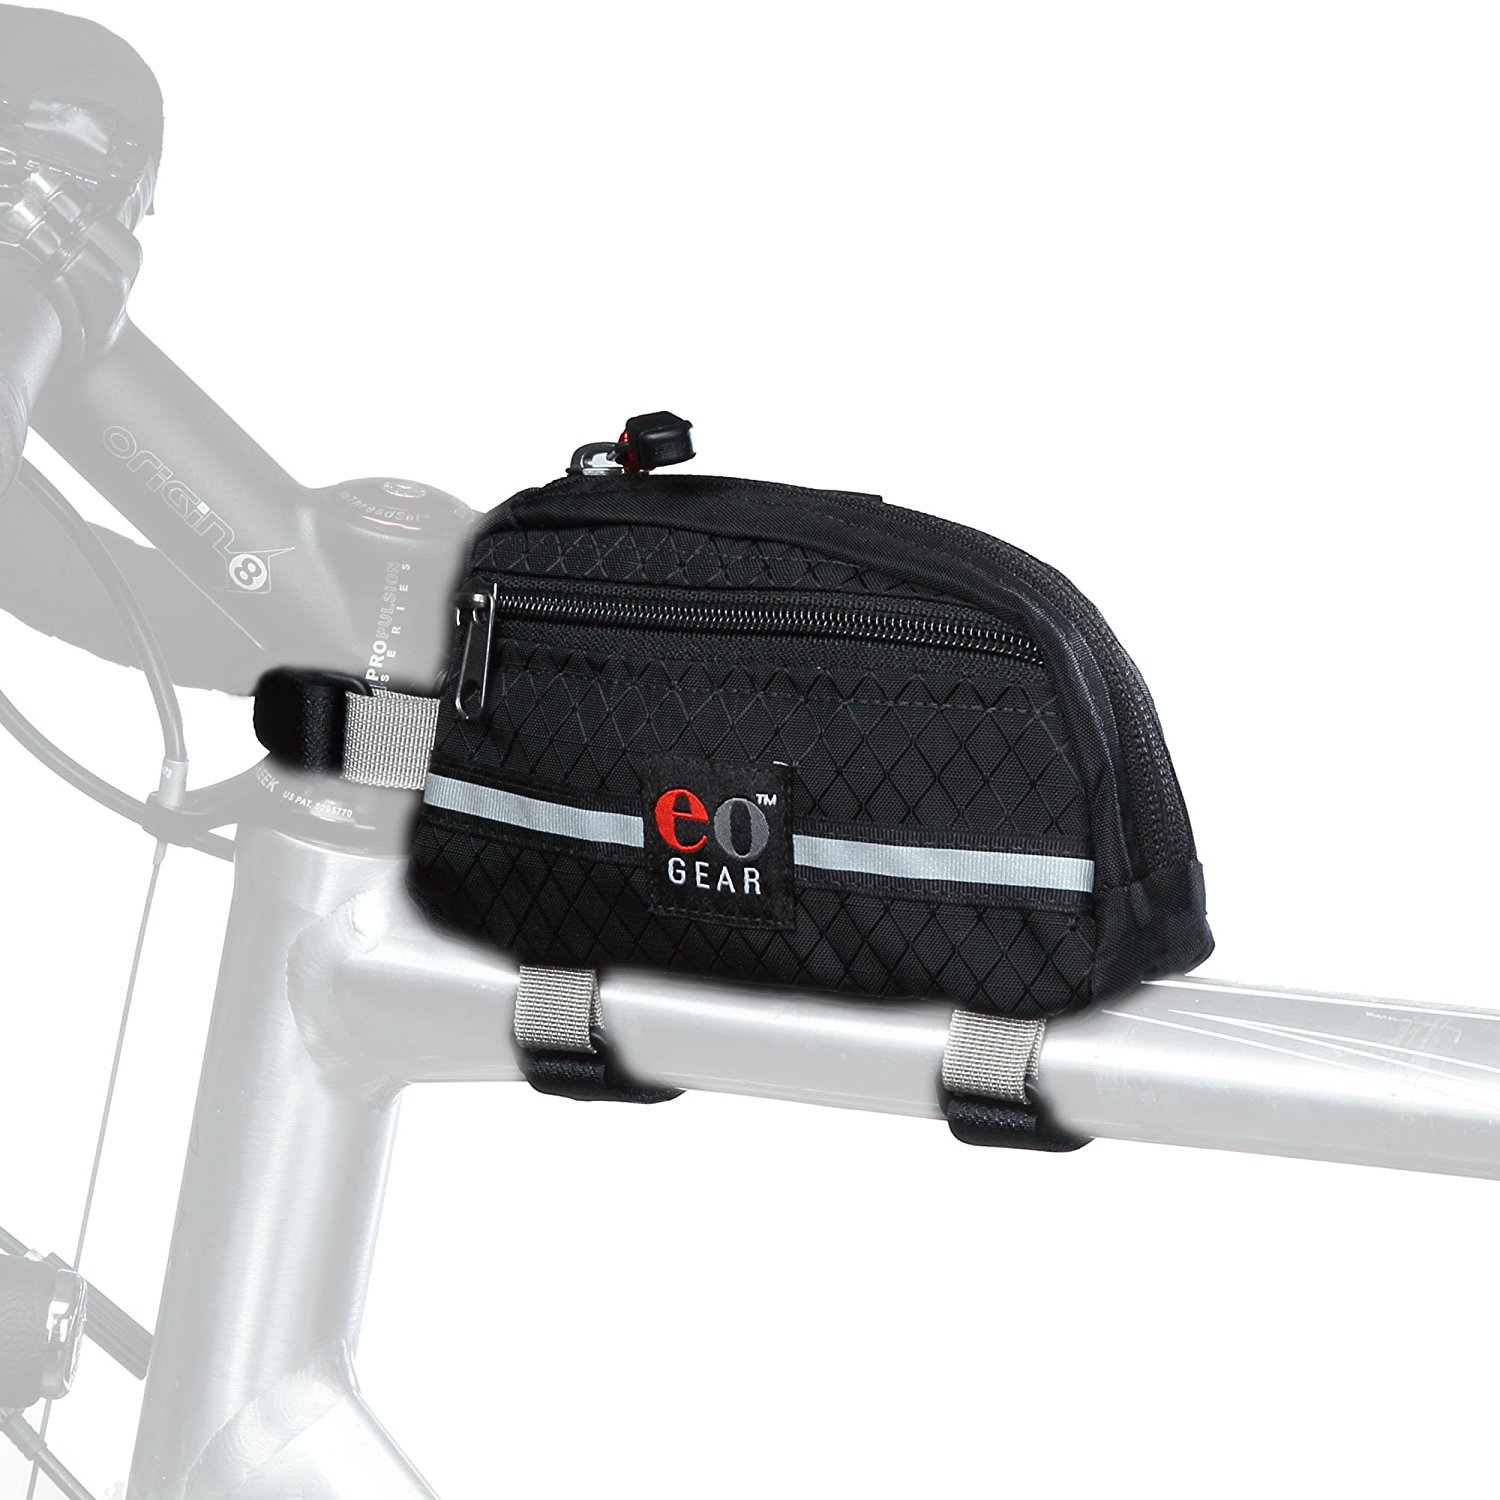 eogear medium century bag.jpg